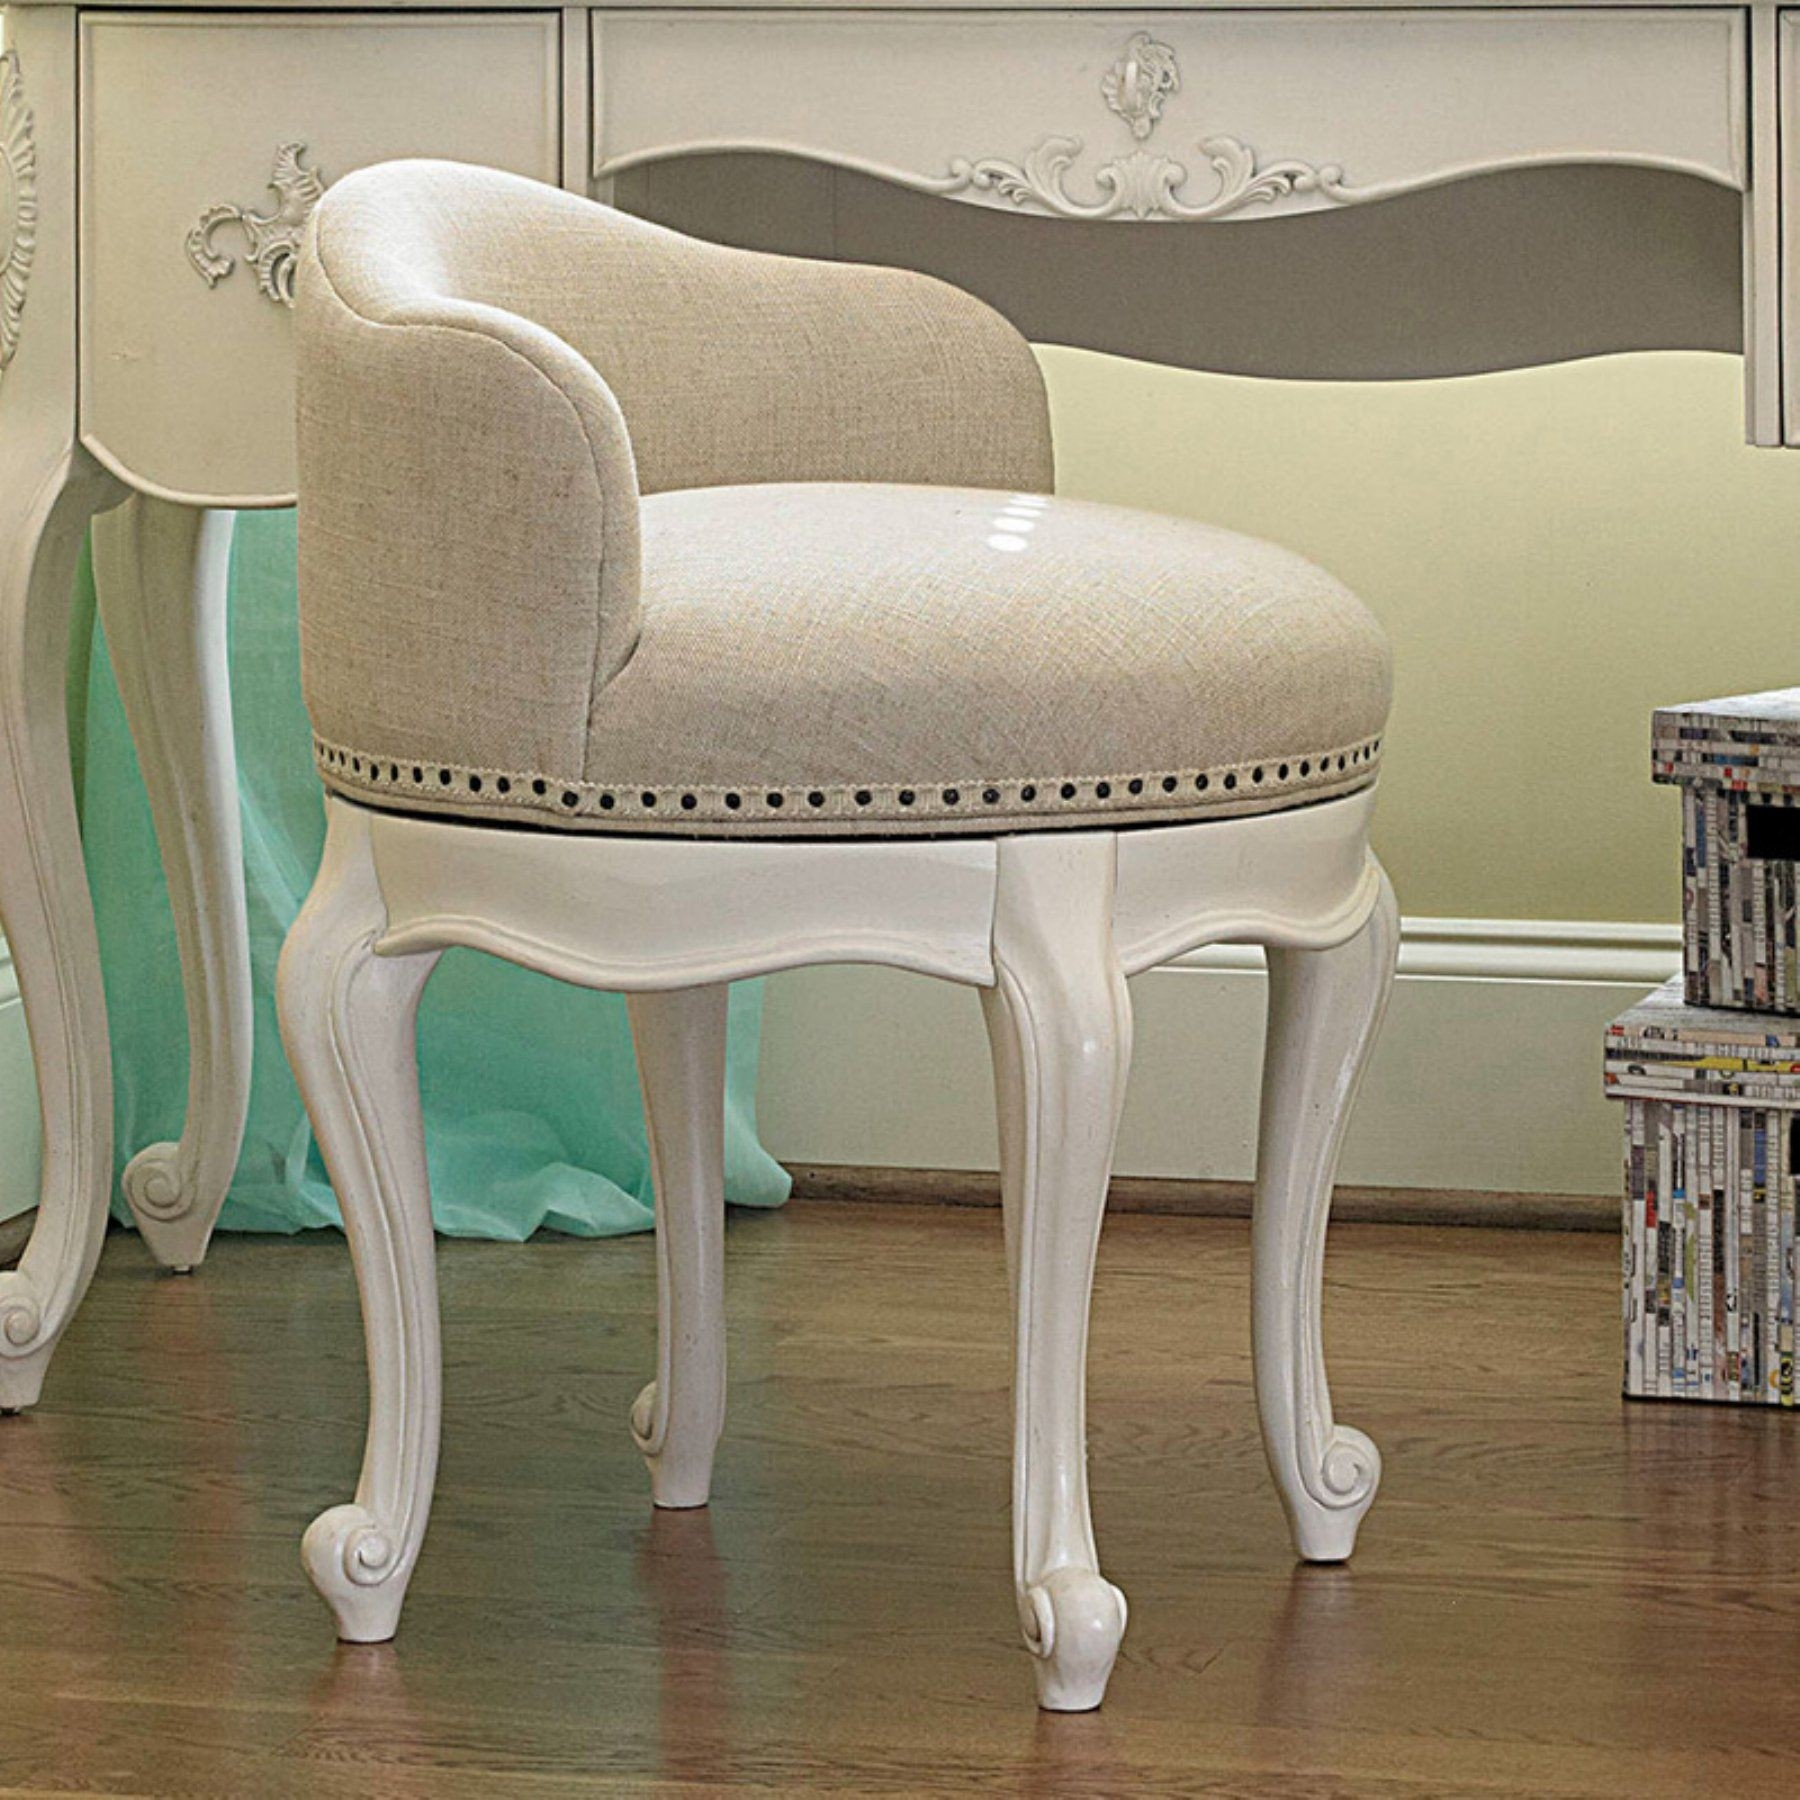 swivel vanity chair cheap lounge for pool ideas on foter smartstuff bellamy stool daisy white